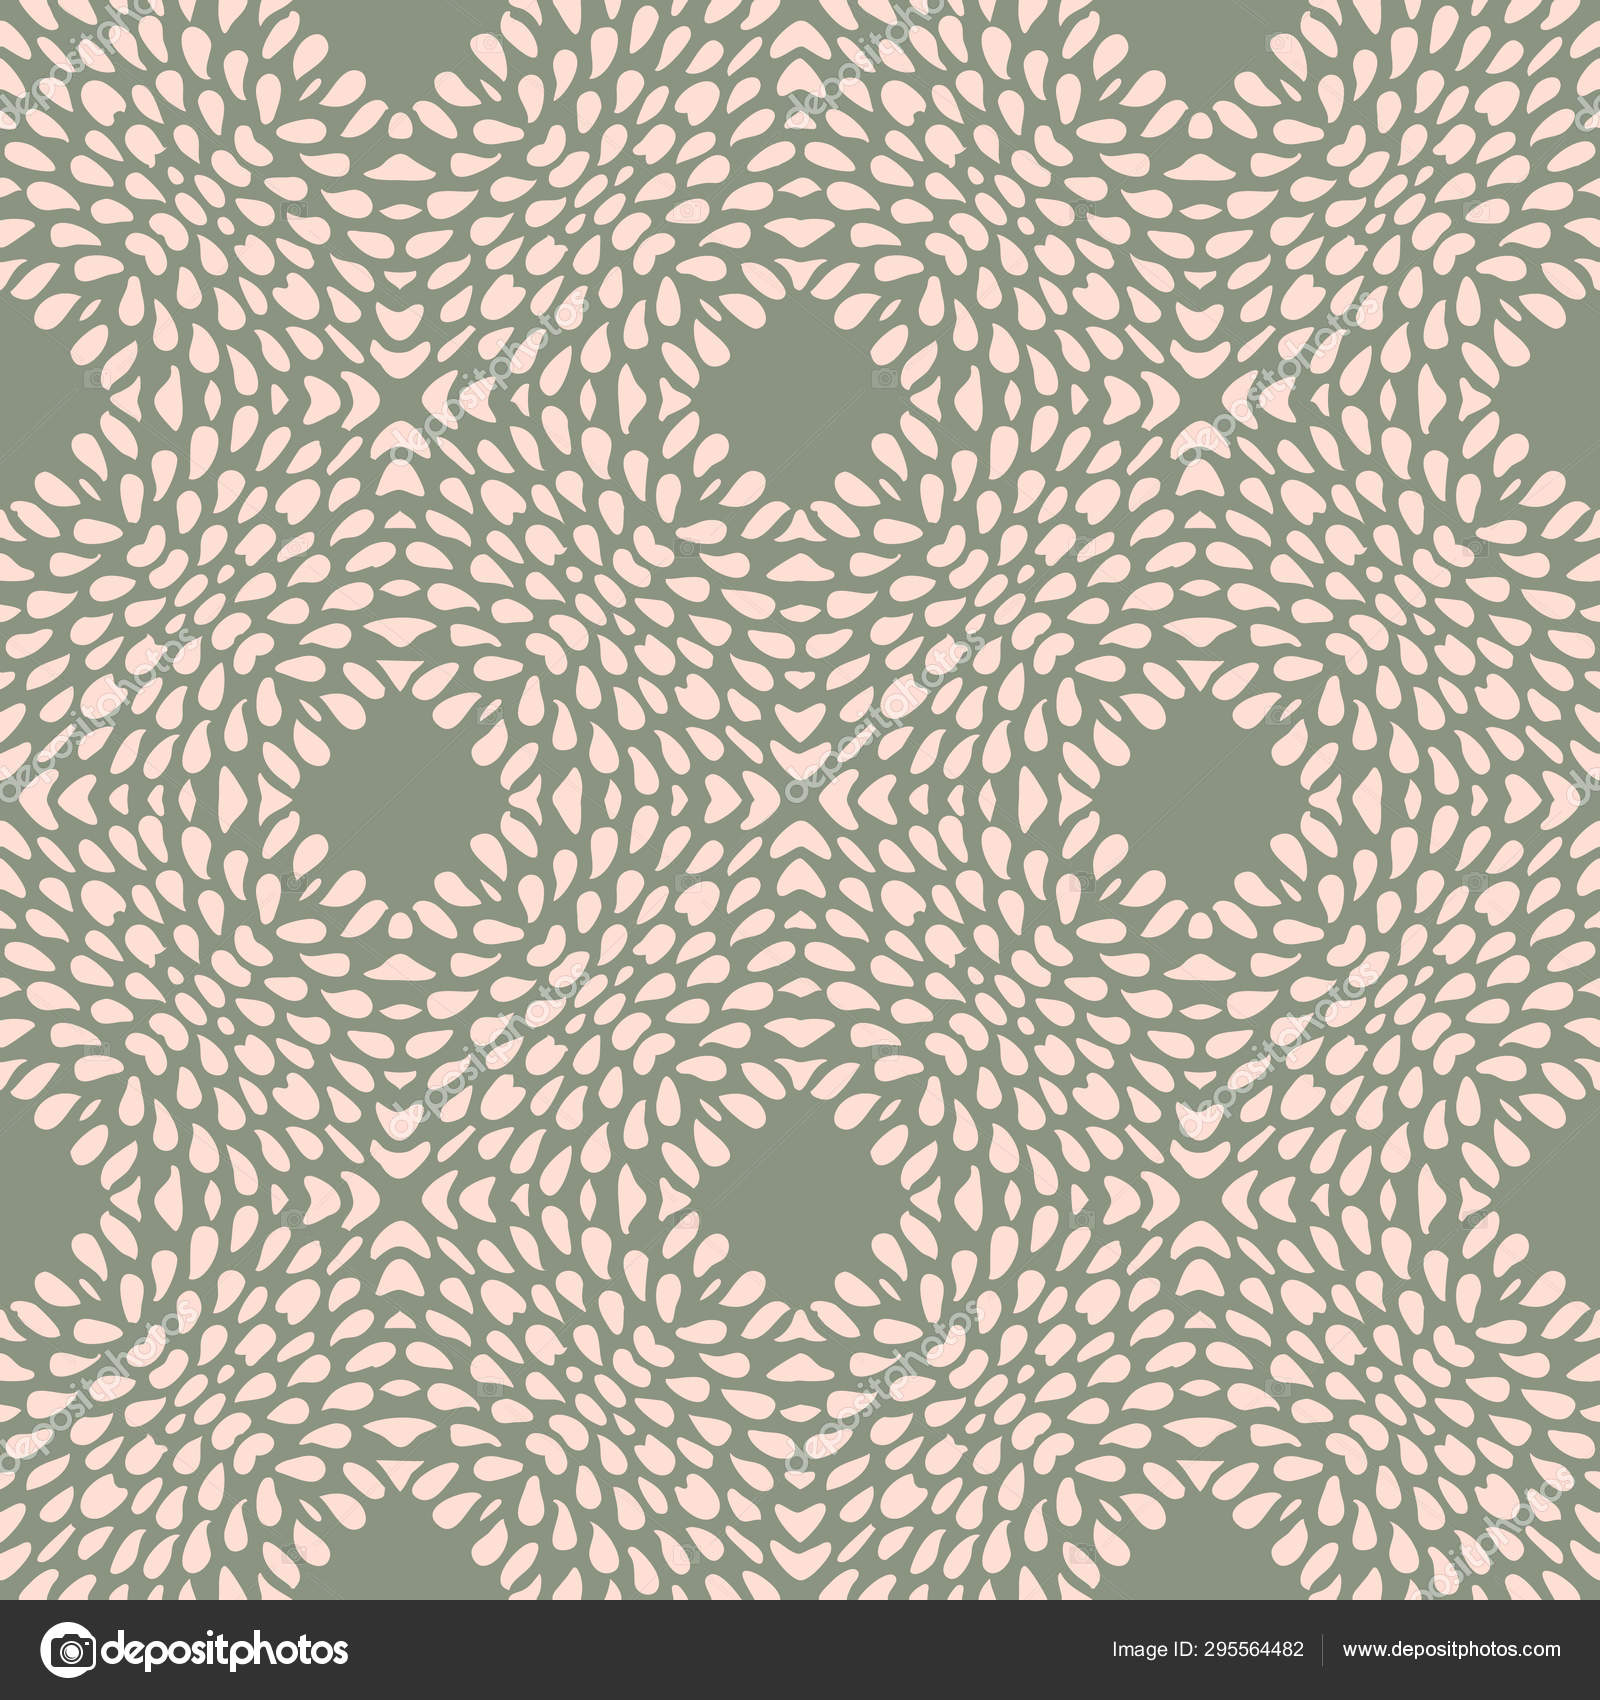 Vector Seamless Pattern With Irregular Dots Texture In